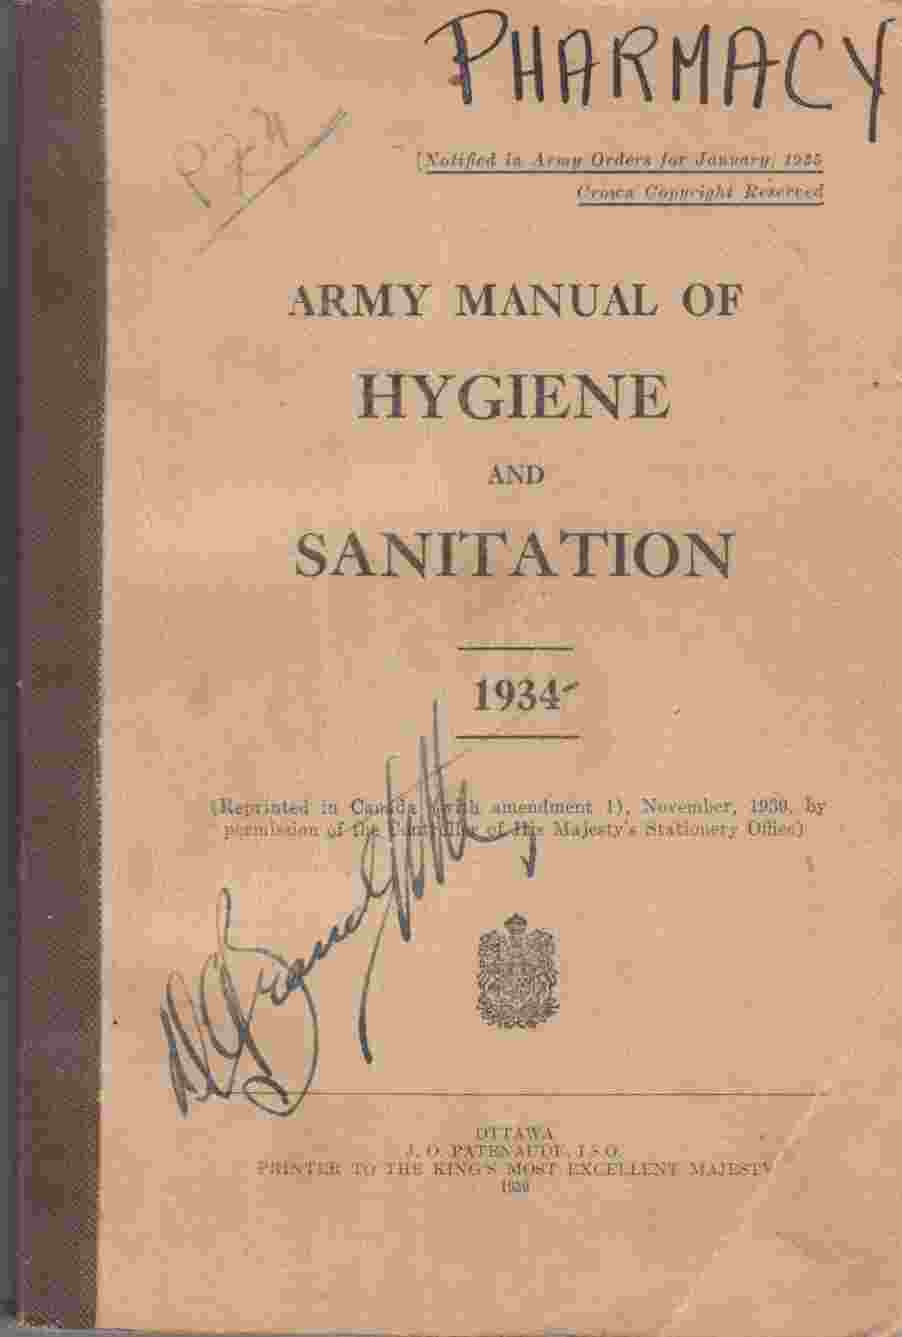 Image for Army Manual of Hygiene and Sanitation 1934